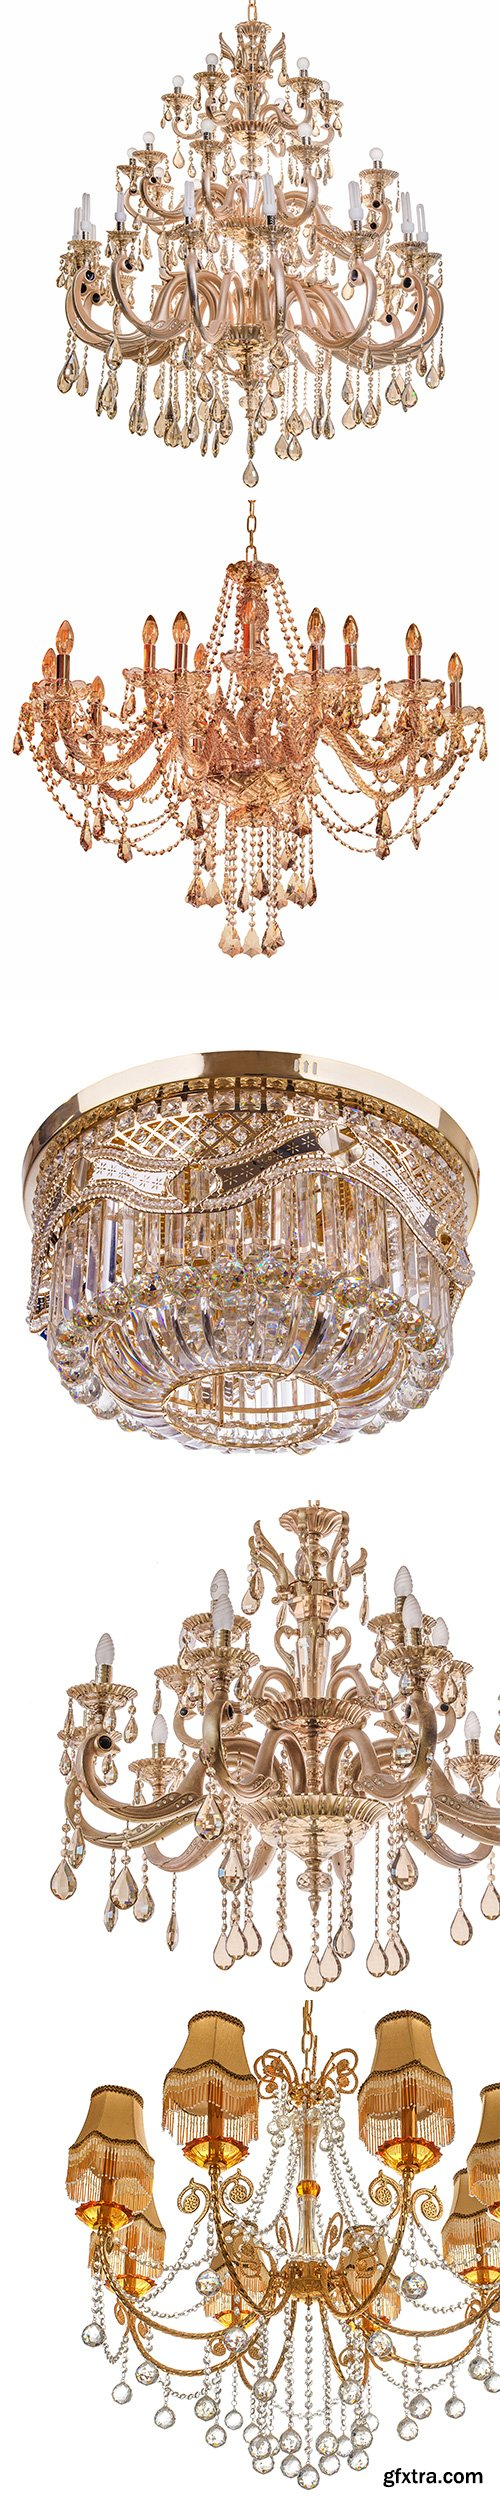 Gold Chandelier Isolated - 30xJPGs